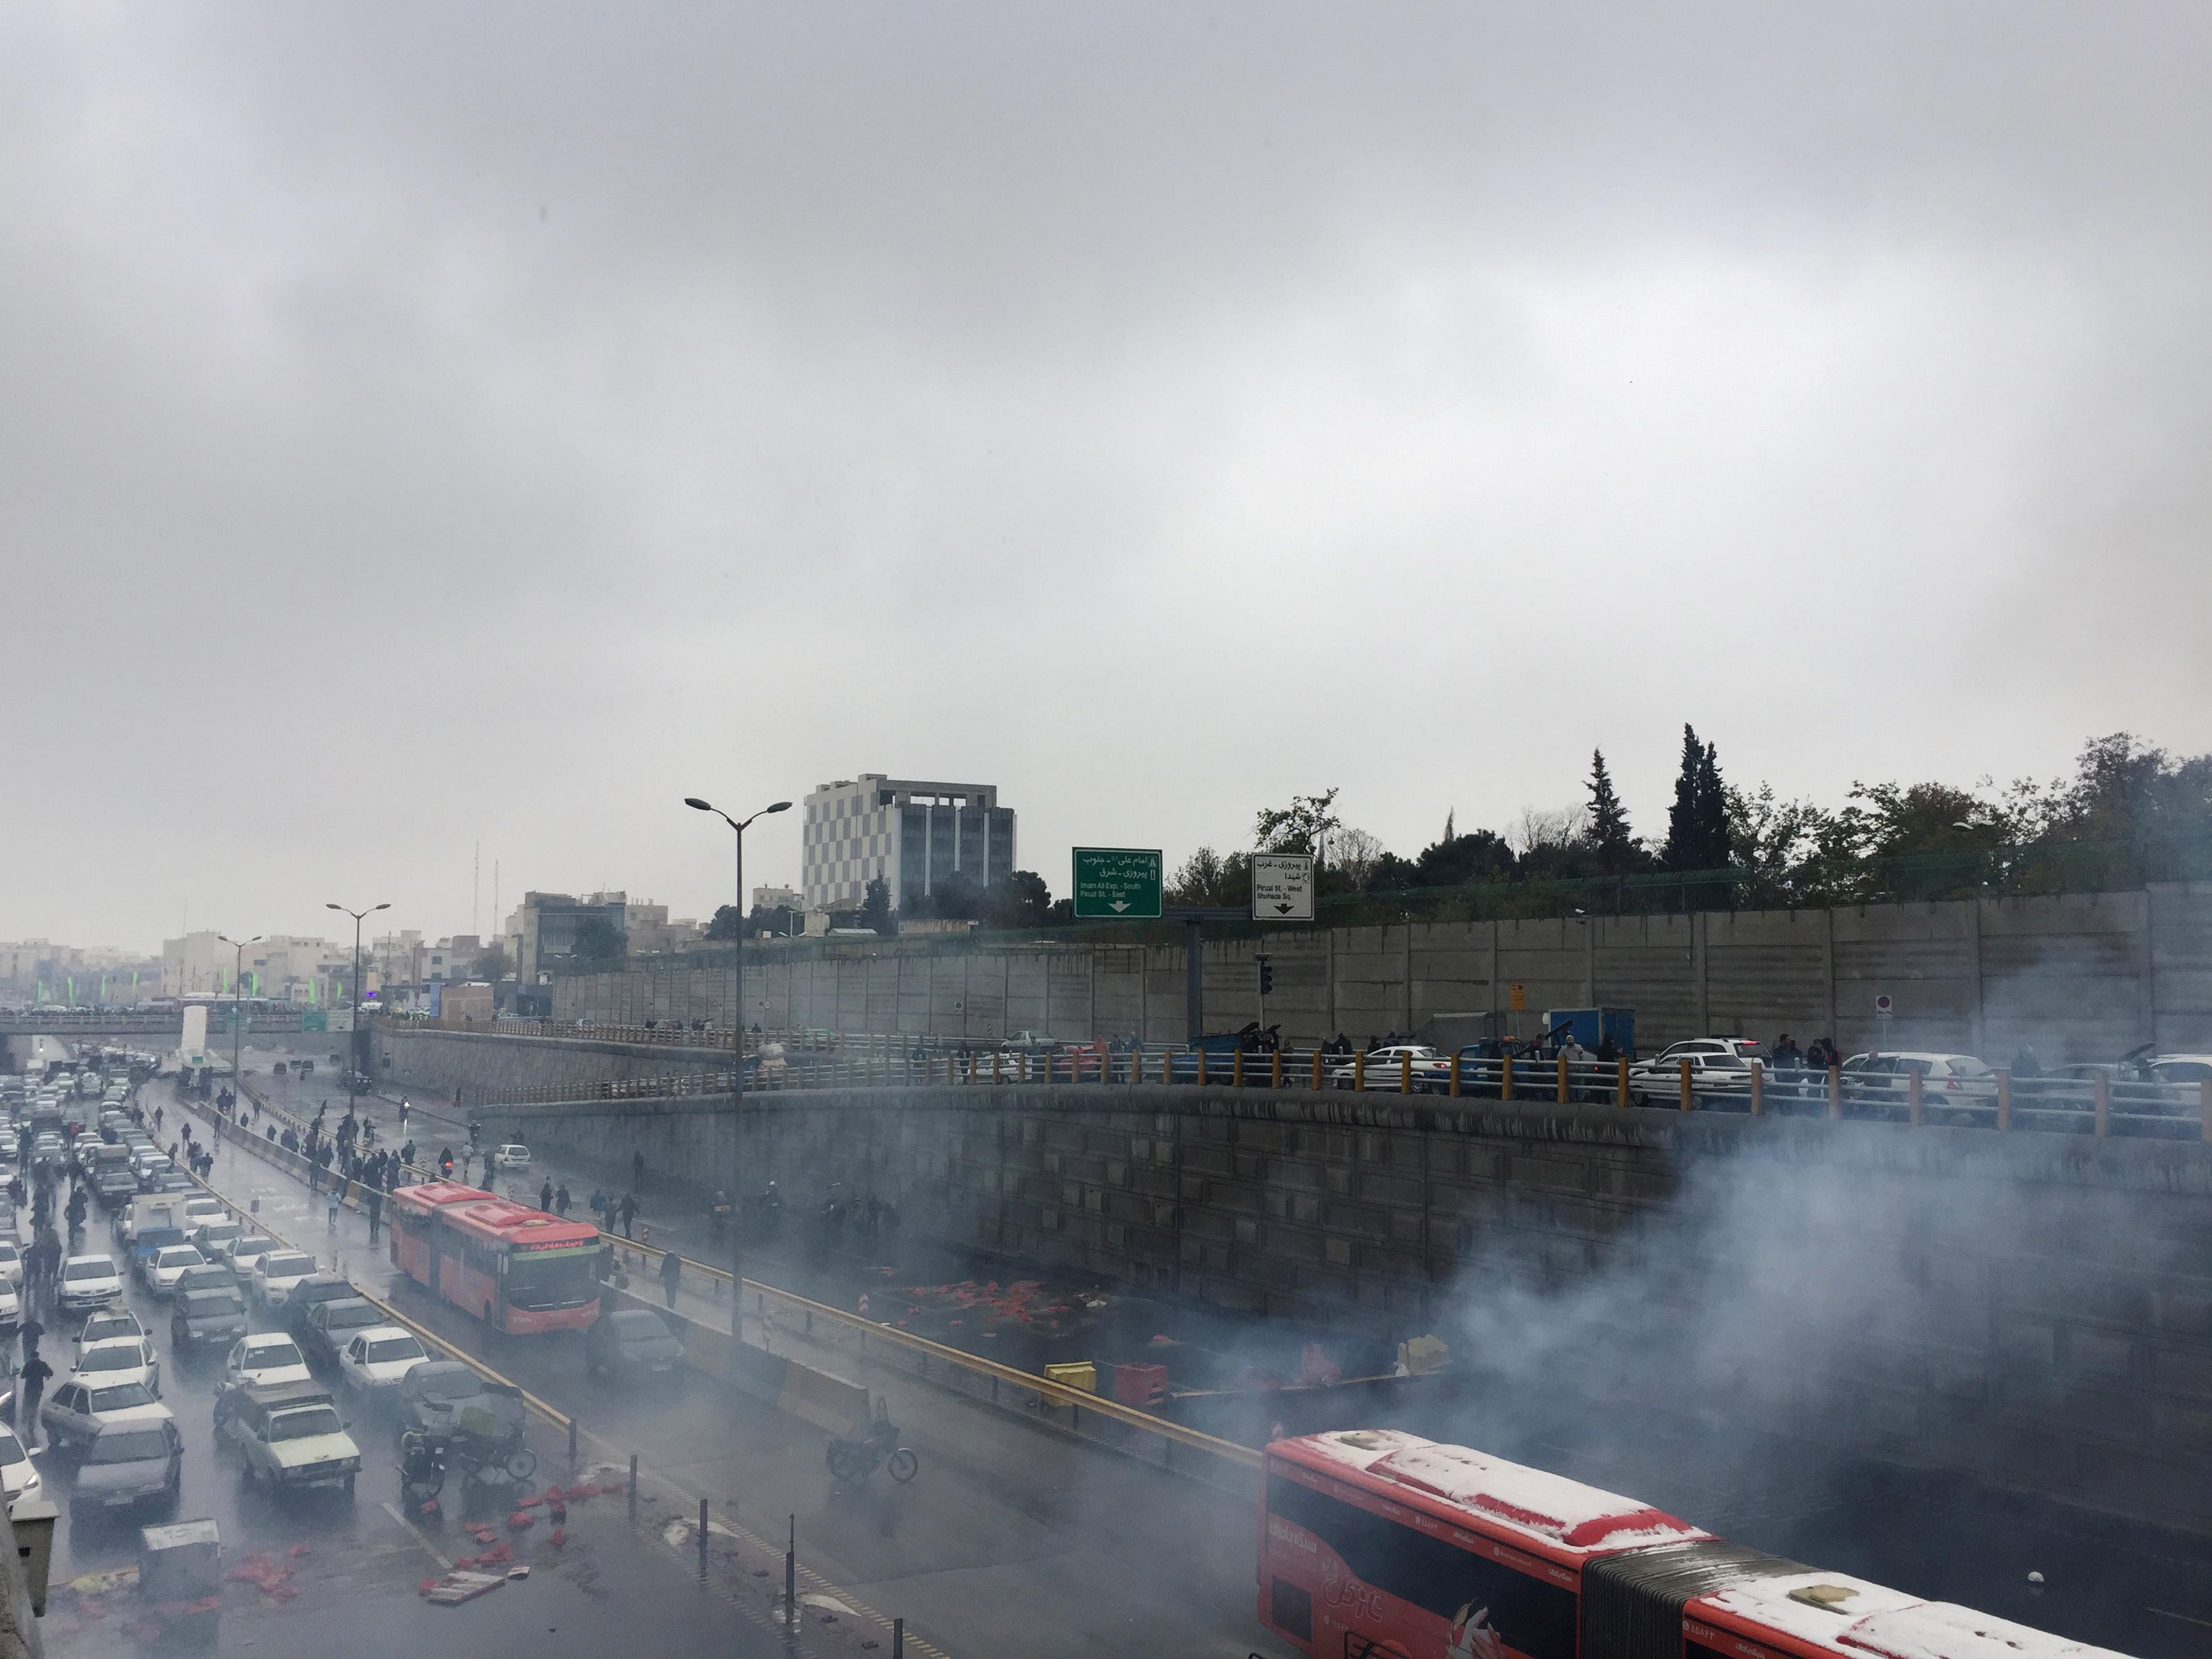 Iran begins reconnecting internet after shutdown over protests